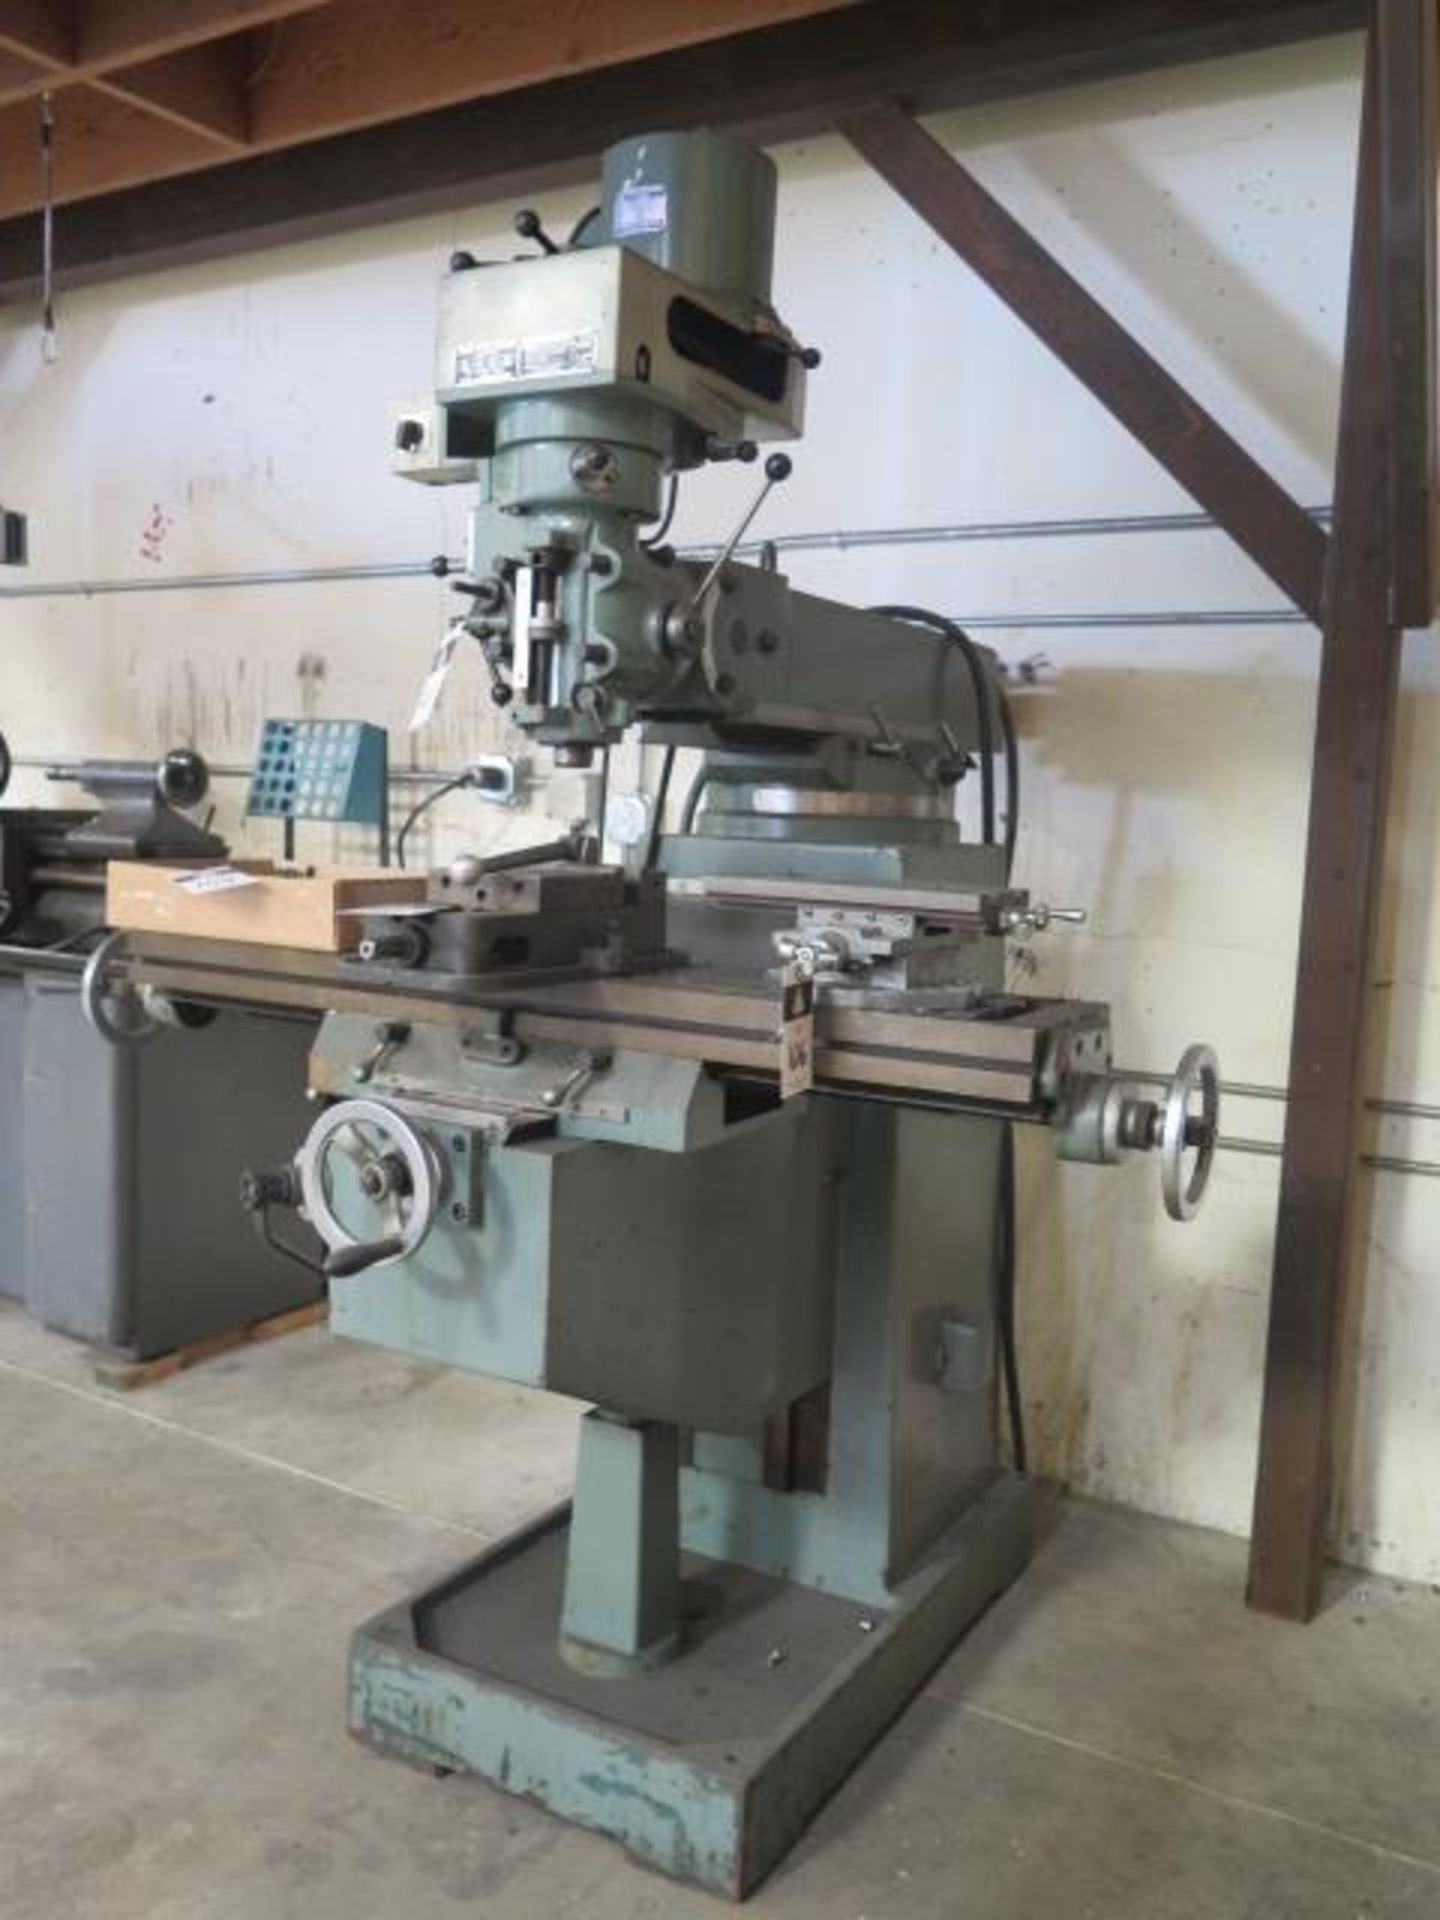 """Import Vertical Mill w/ 3Hp Motor, 80-2720 RPM, 8-Speeds, R8 Spindle, 10"""" x 48"""" Table (SOLD AS- - Image 2 of 9"""